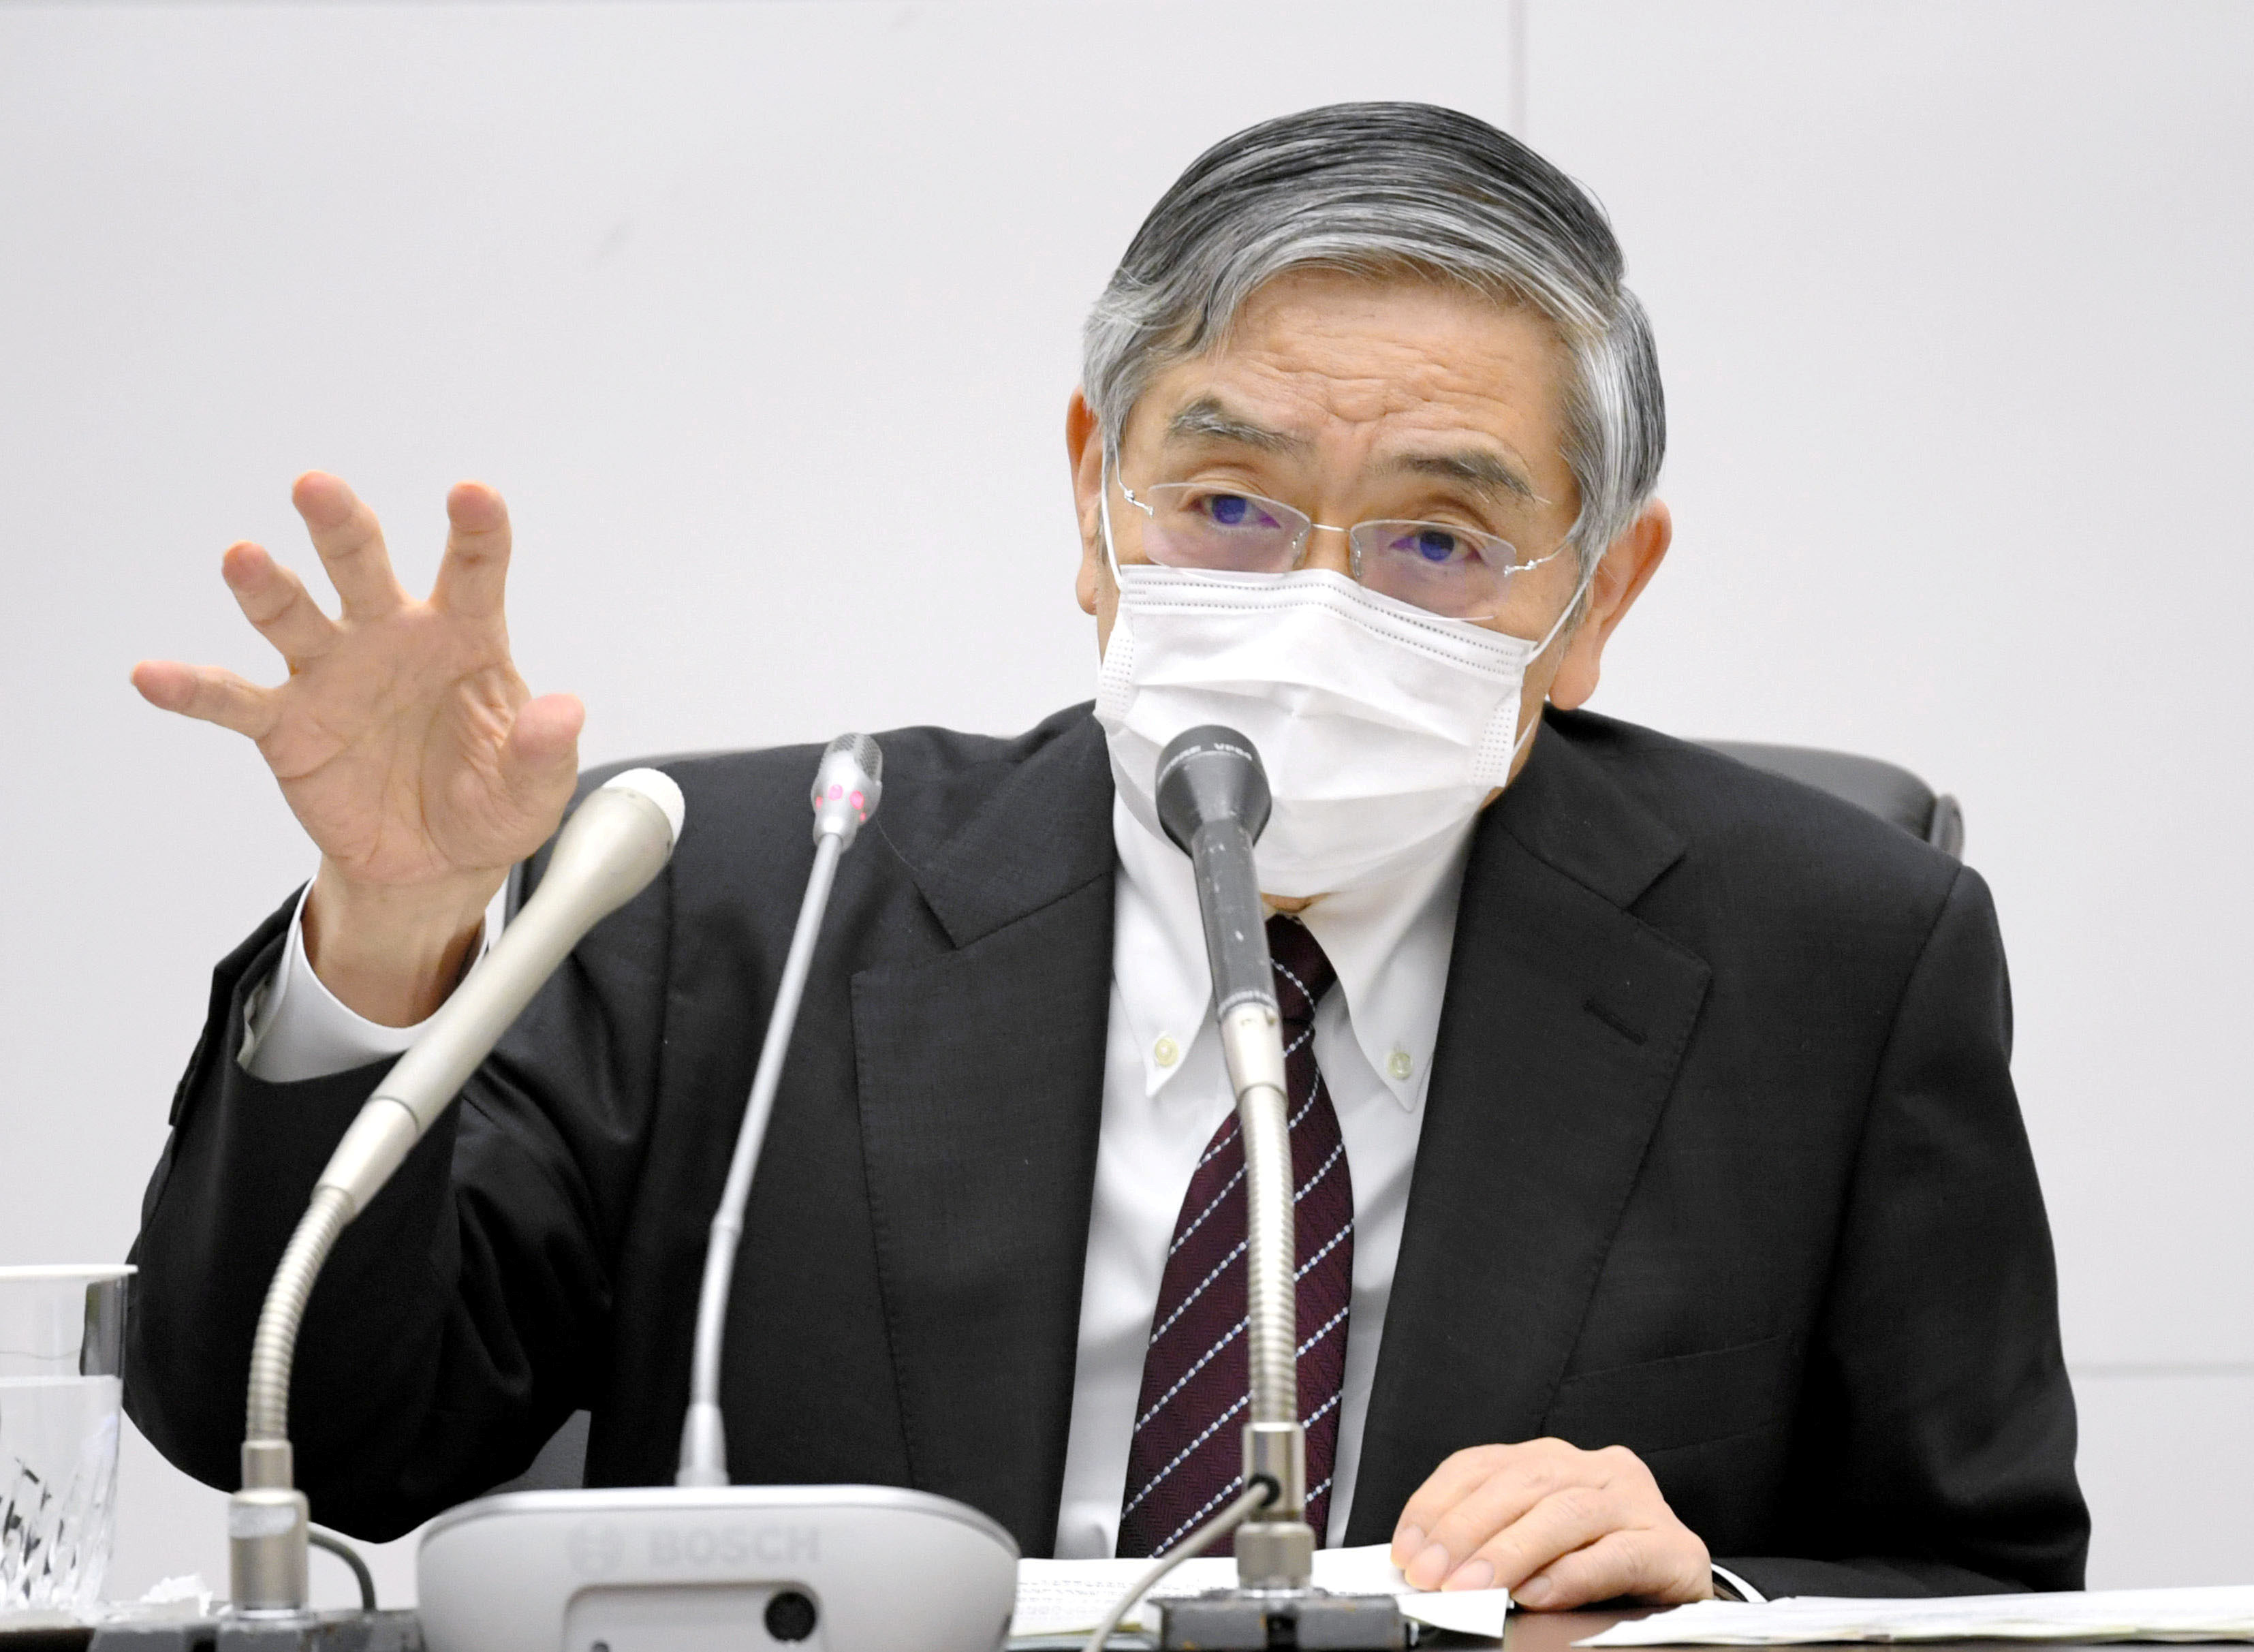 Bank of Japan Governor Haruhiko Kuroda wearing a protective face mask attends a news conference as the spread of the coronavirus disease (COVID-19) continues in Tokyo, Japan, April 27, 2020, in this photo released by Kyodo. Mandatory credit Kyodo/via REUTERS